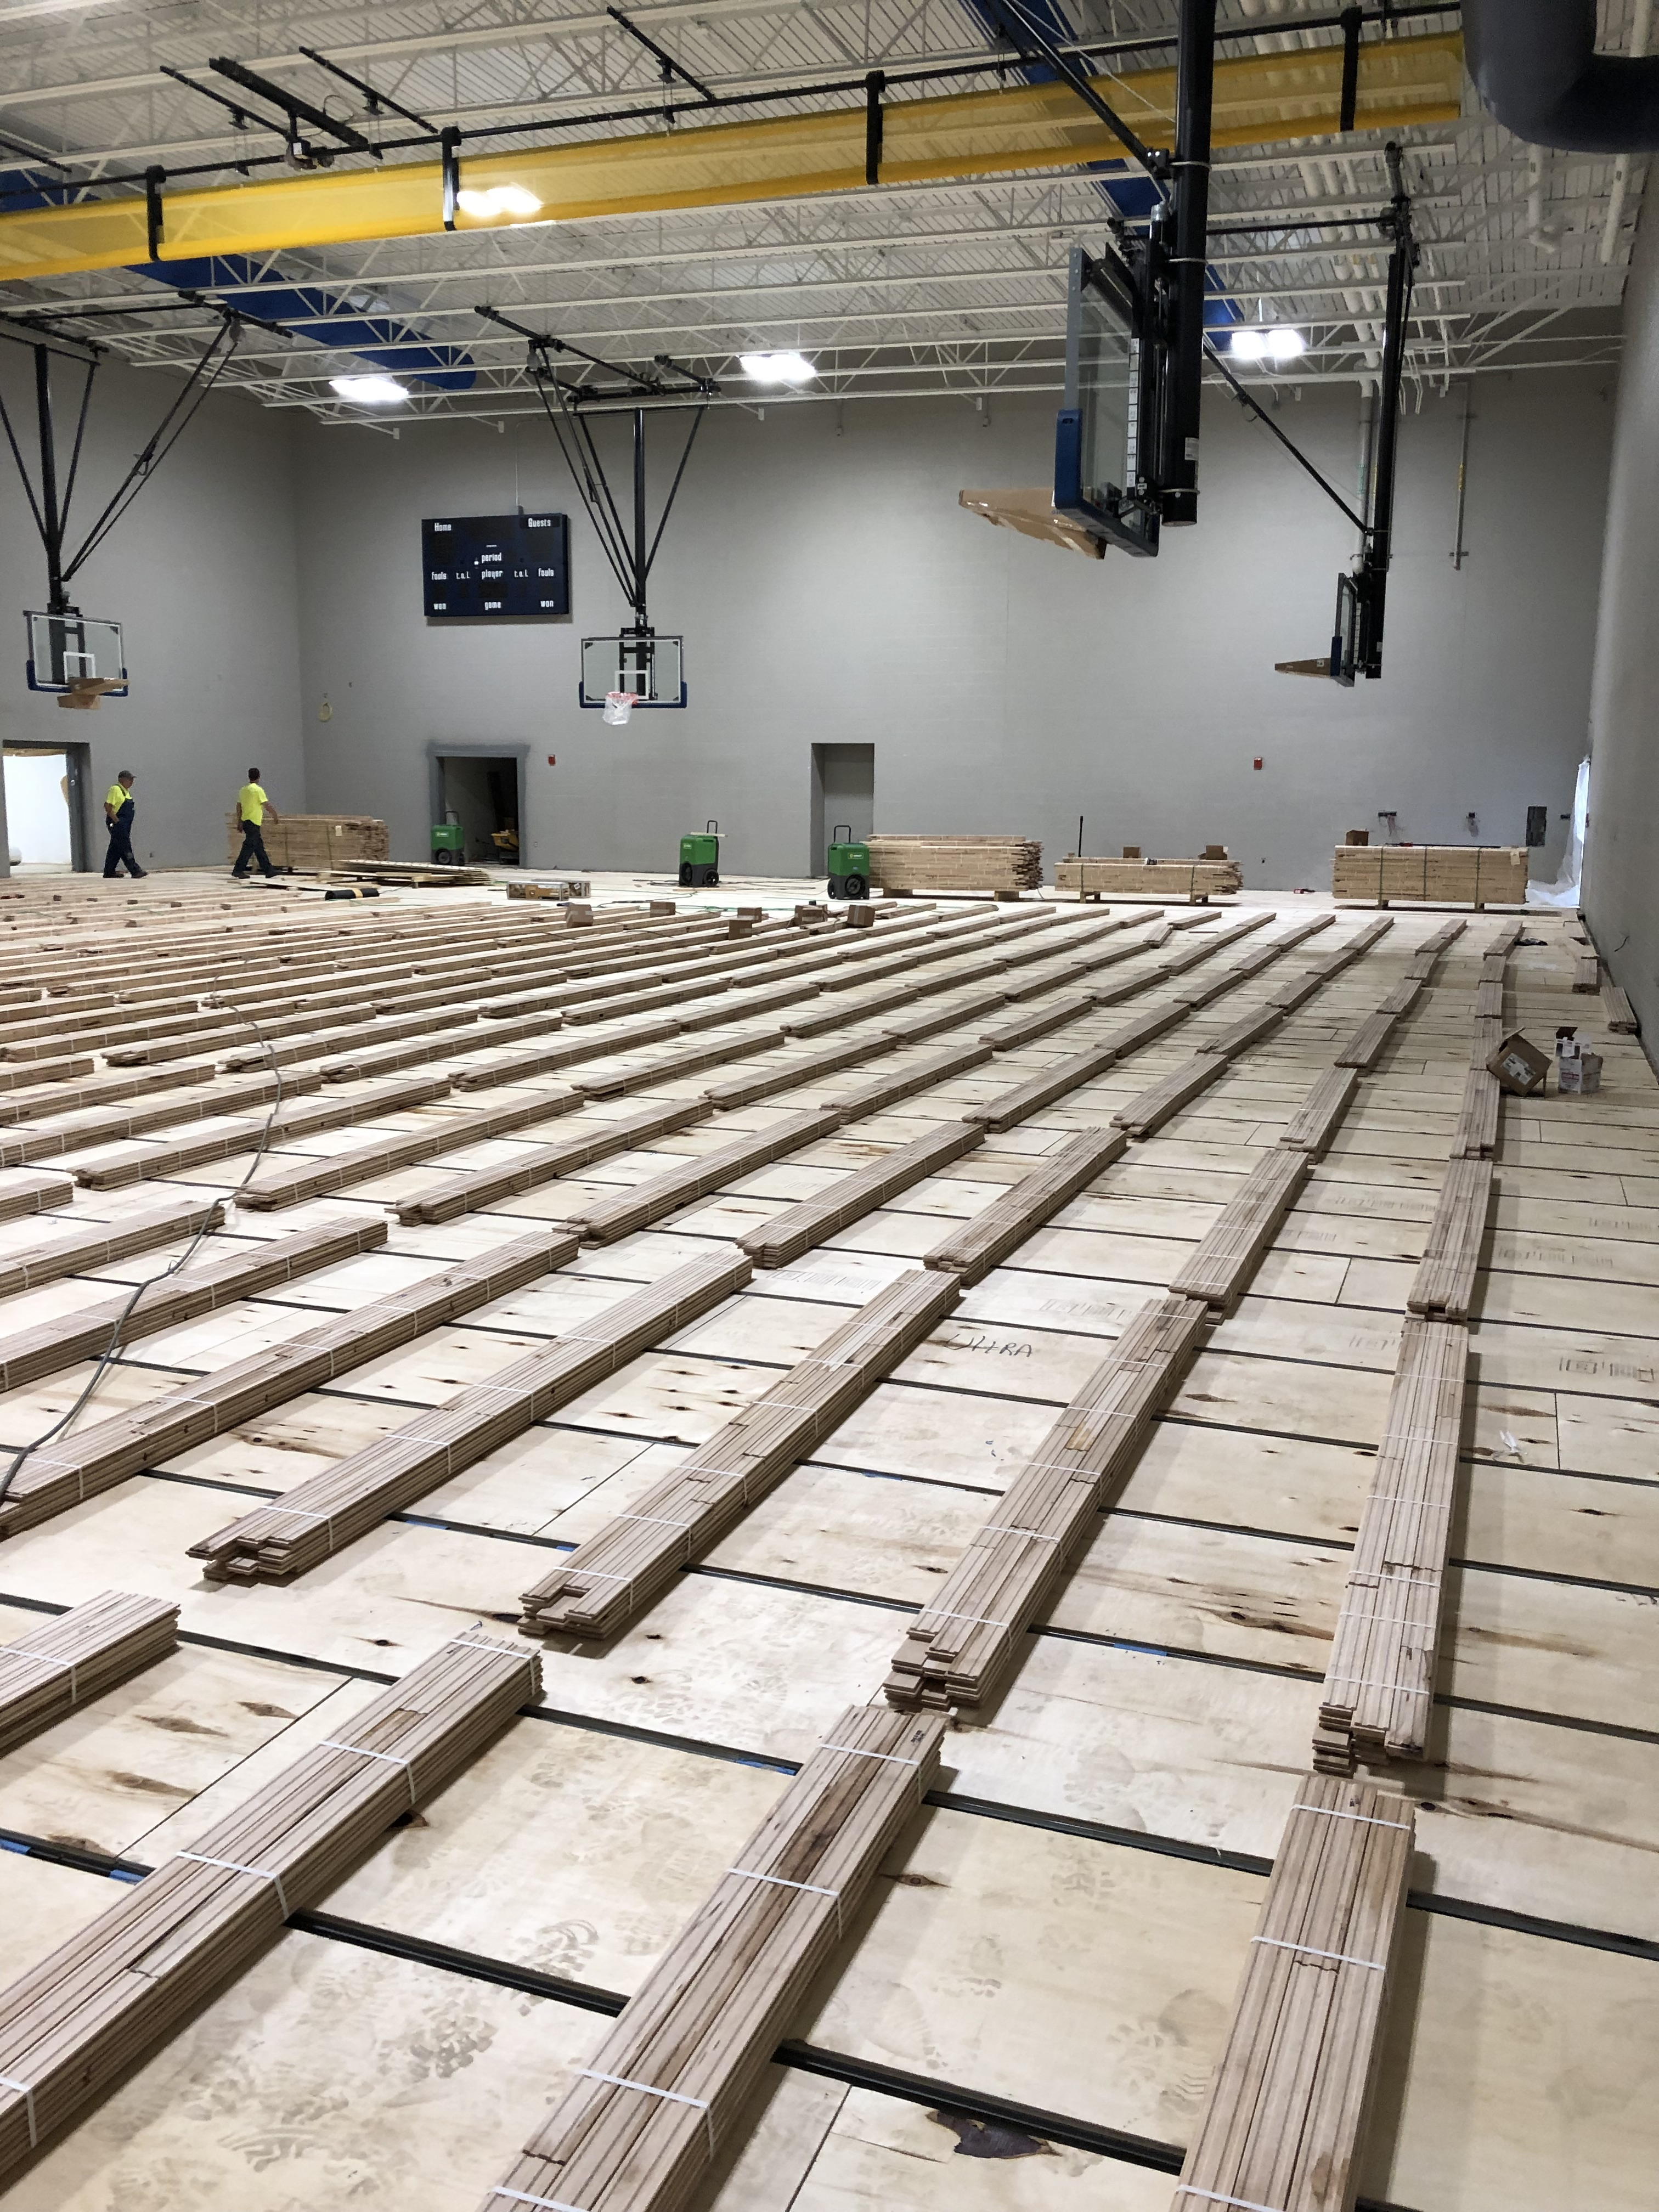 New Thomas Ewing gym floor is being installed